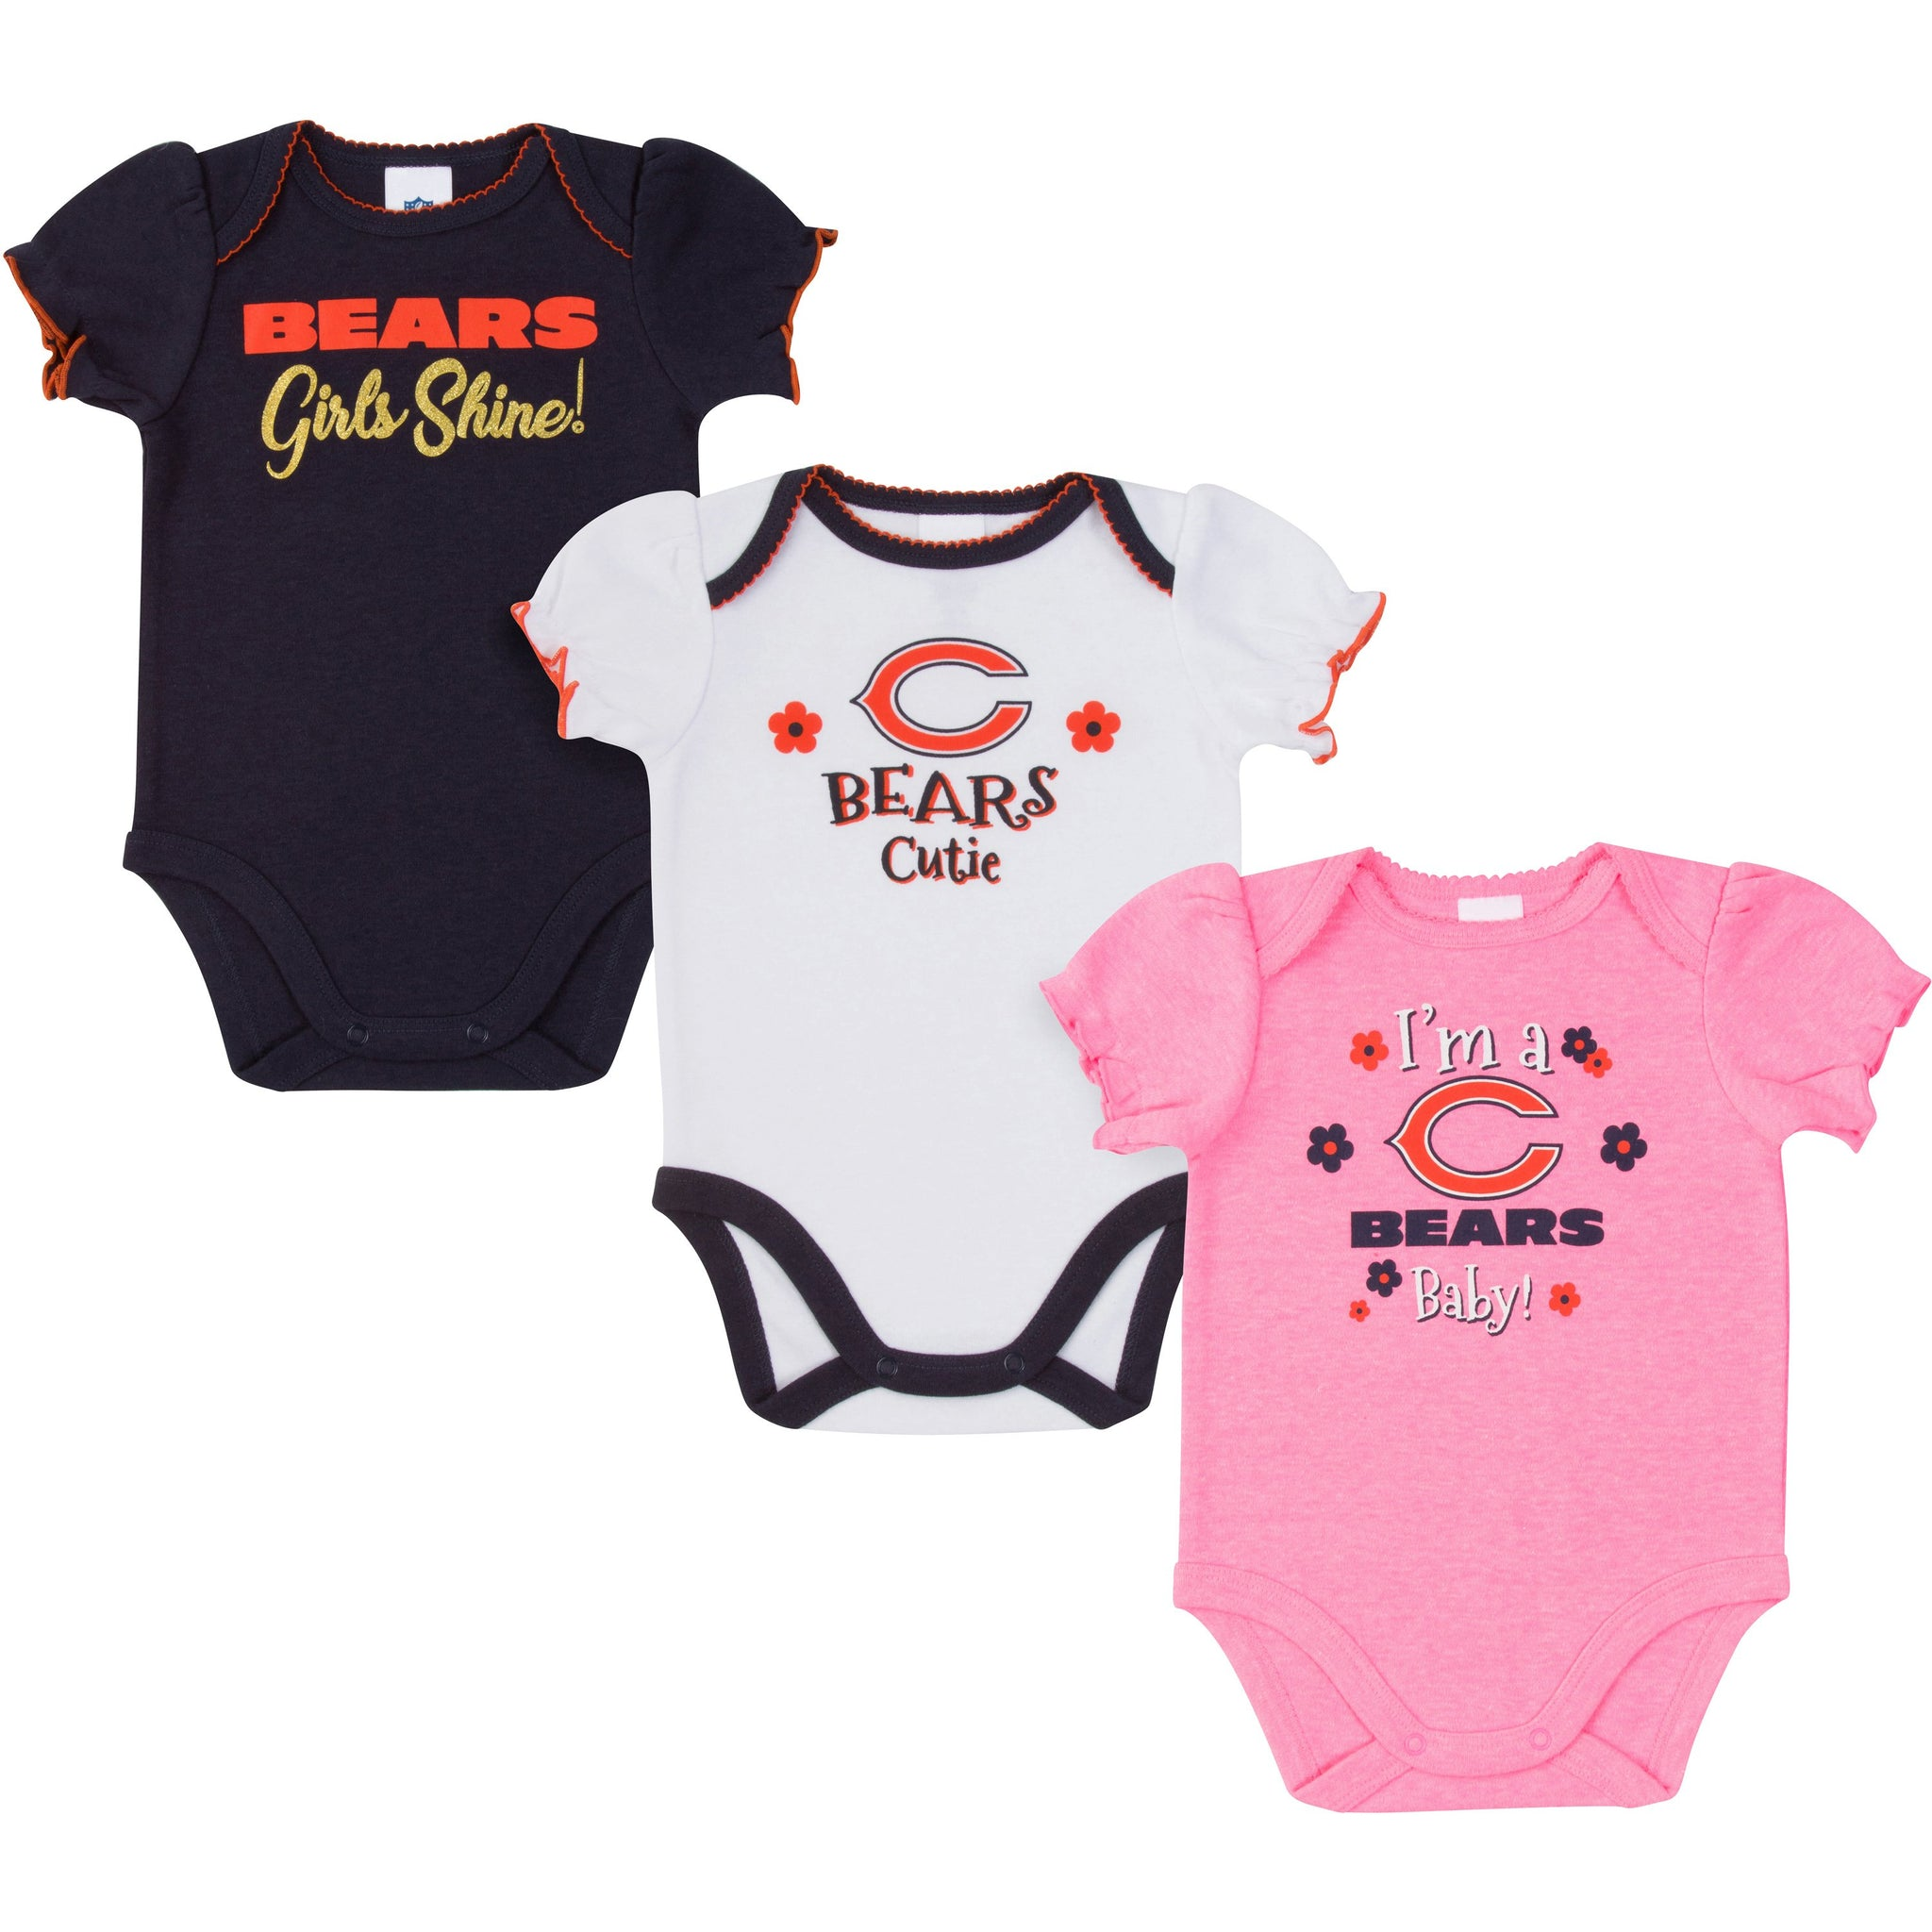 Chicago Bears Baby Girl Short Sleeve Bodysuit, 3-pack -Gerber Childrenswear